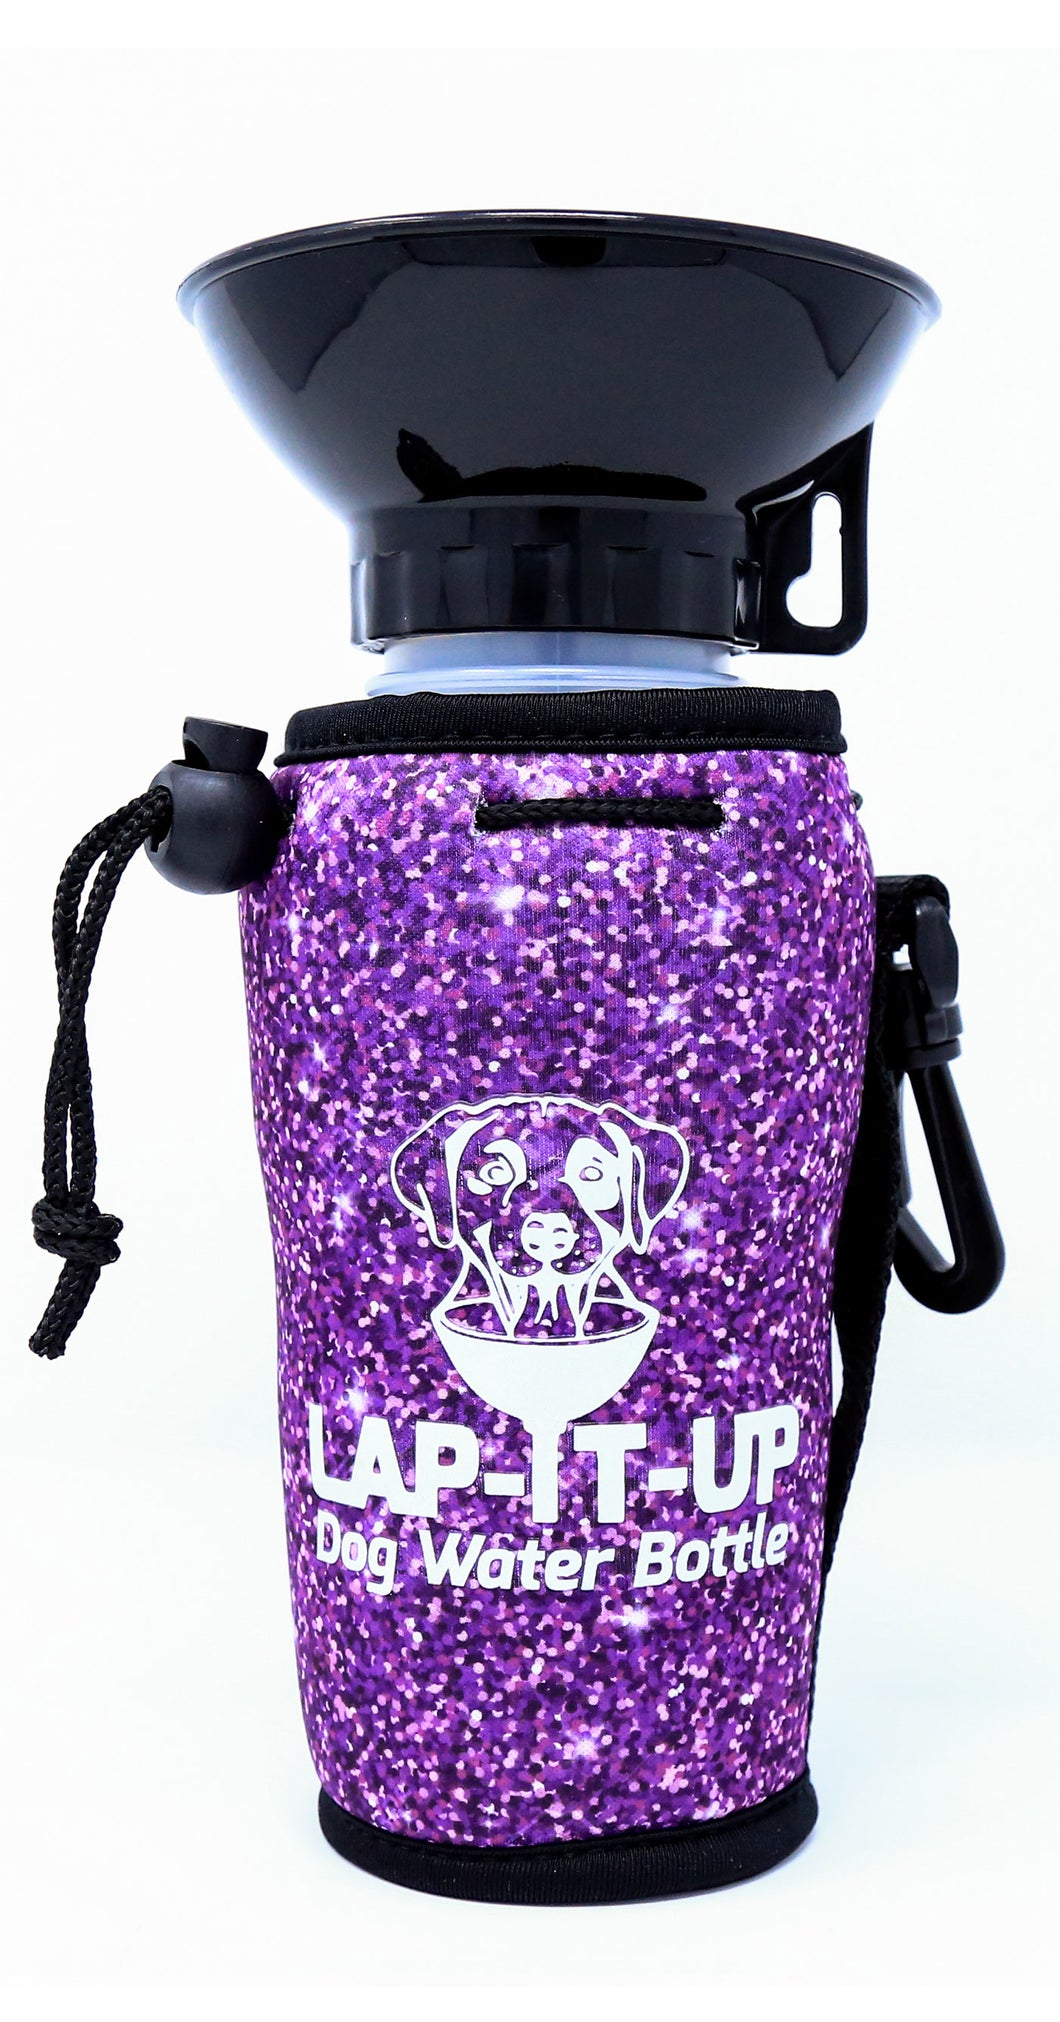 Lap-It-Up Dog Water Bottle - Glitter